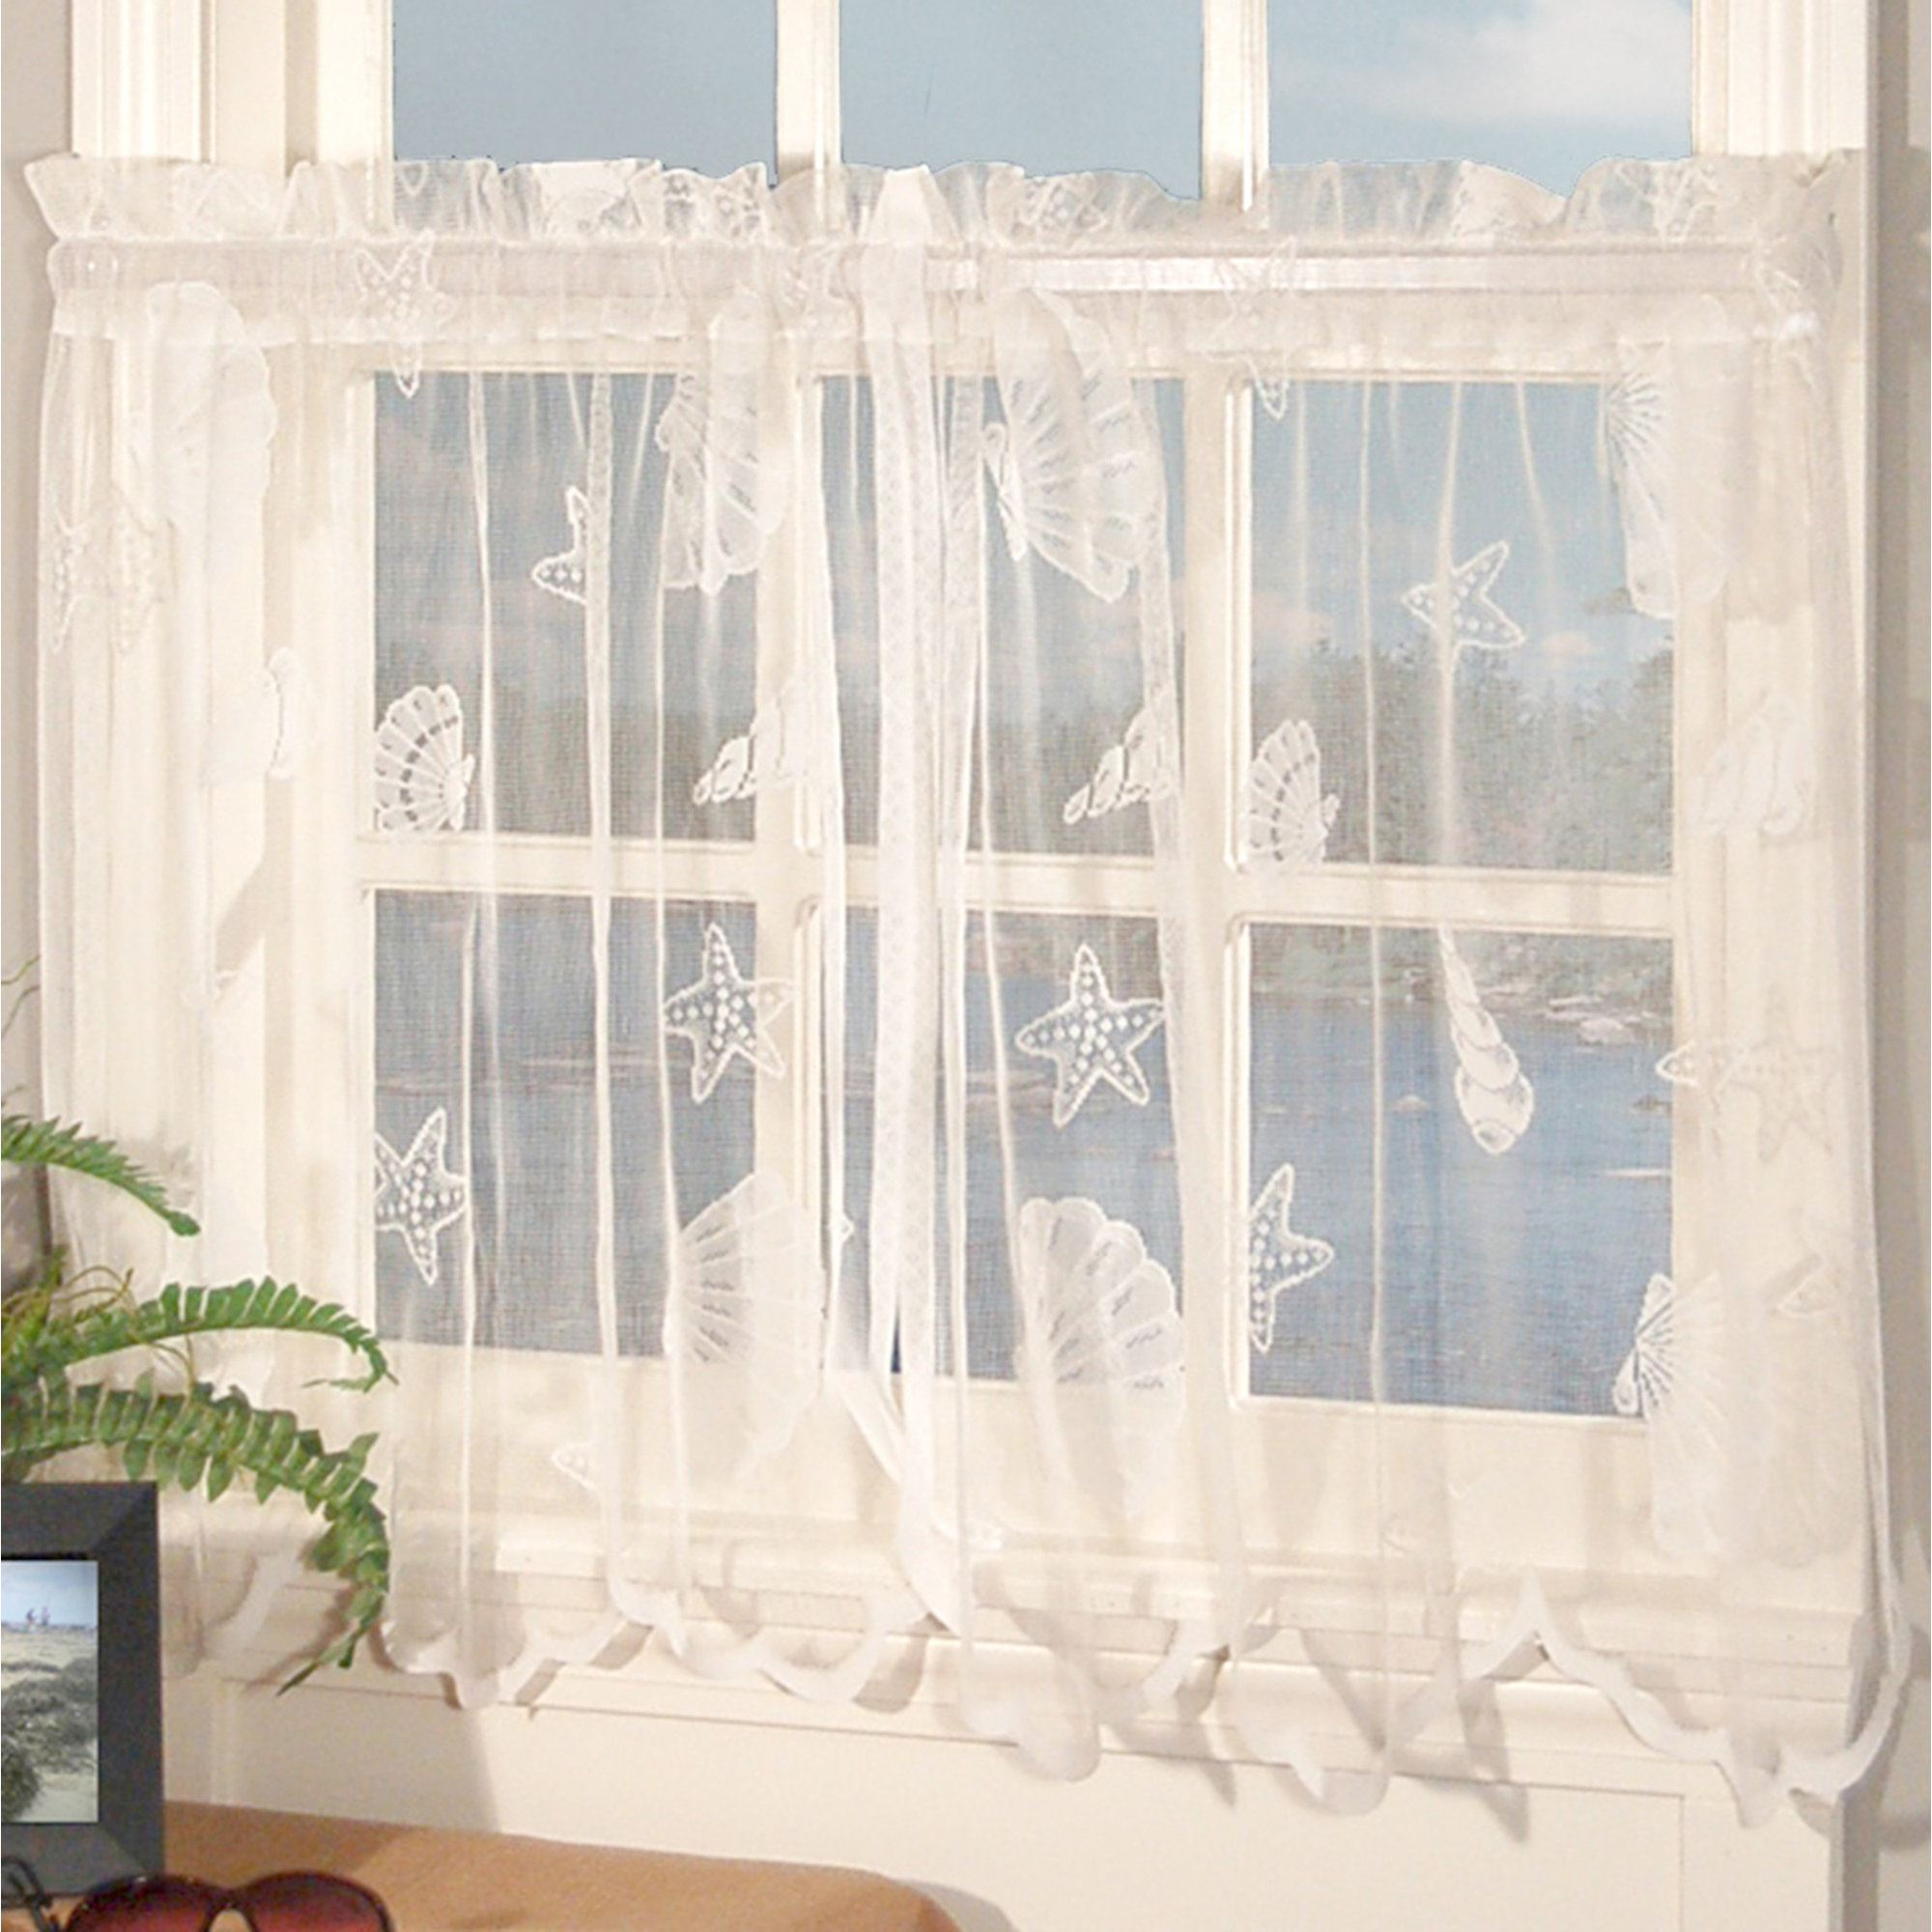 shell rod v tailored lace pair curtain tier seashells curtains window treatment p